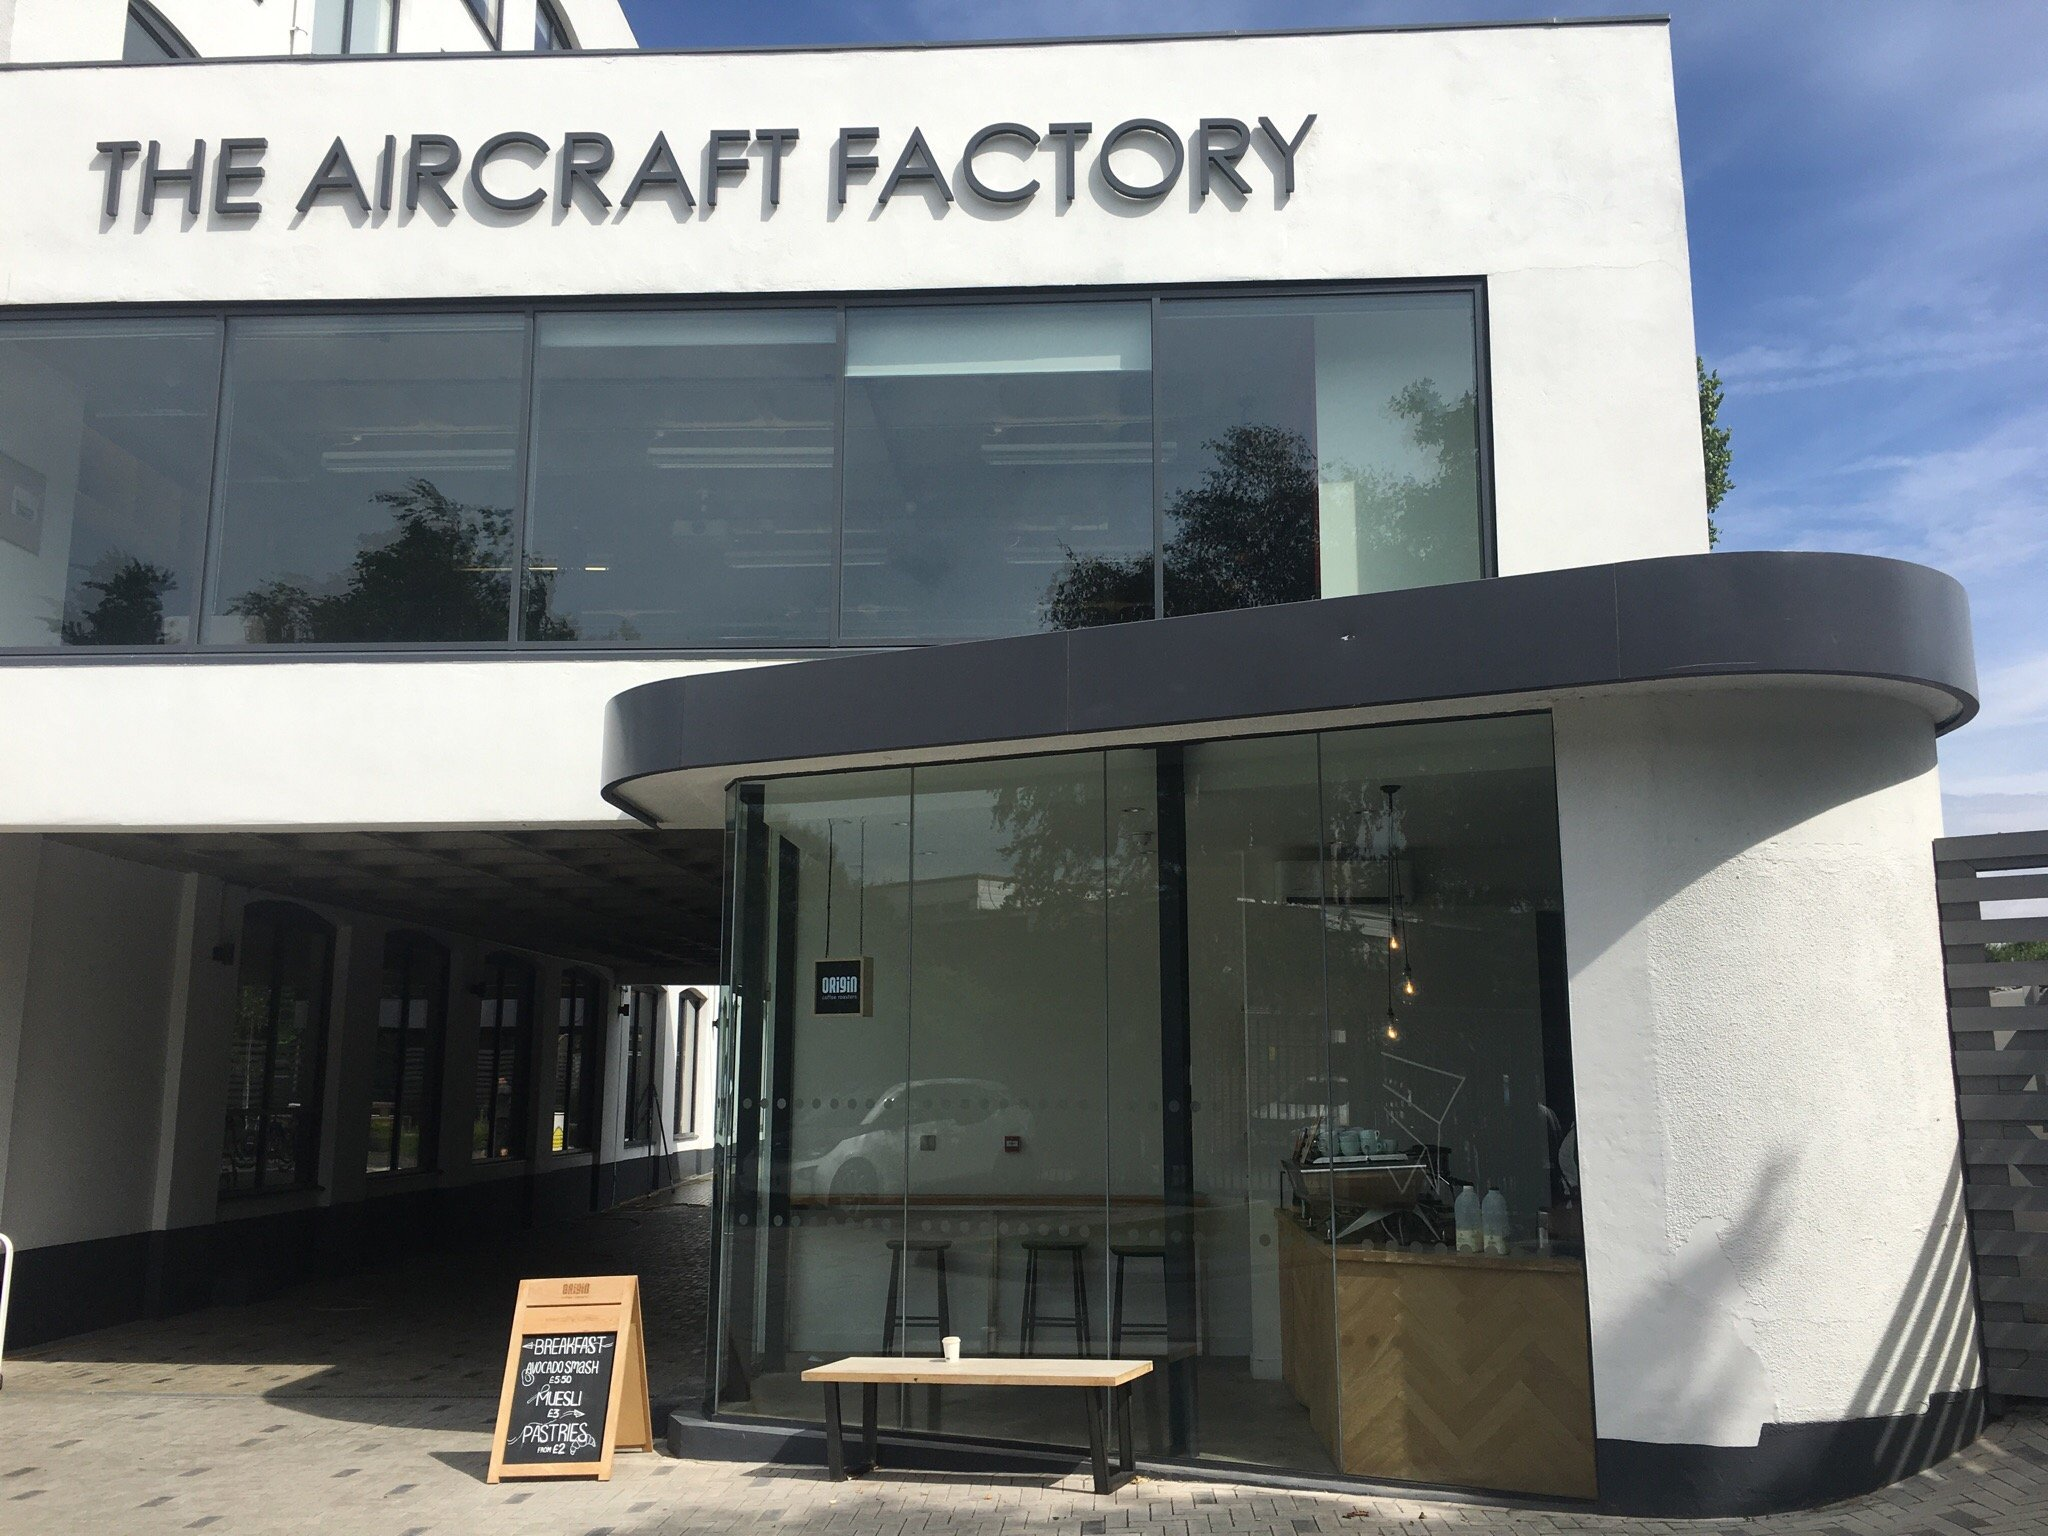 Entrace to ClearPeople at The Aircraft Factory